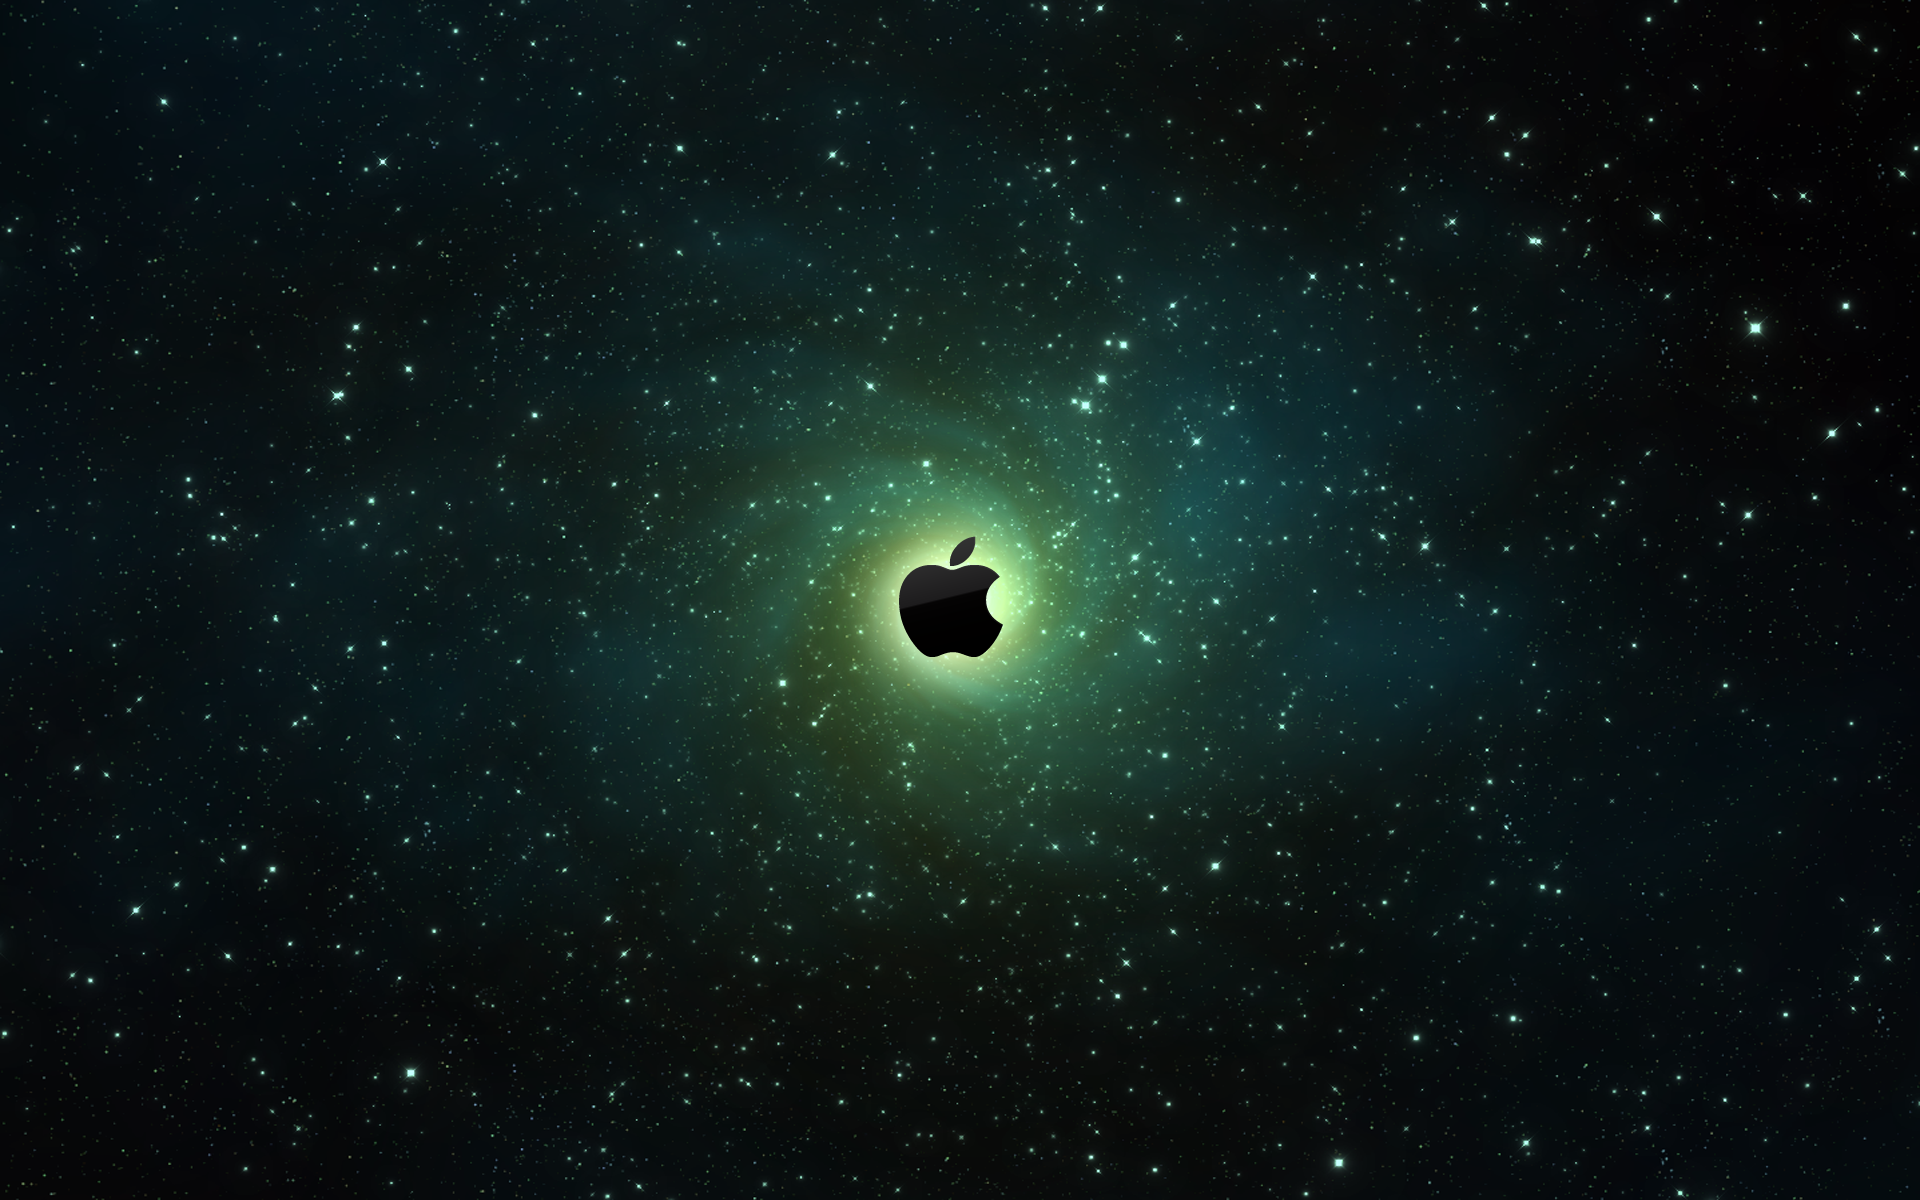 50 Inspiring Apple Mac Ipad Wallpapers For Download 壁紙